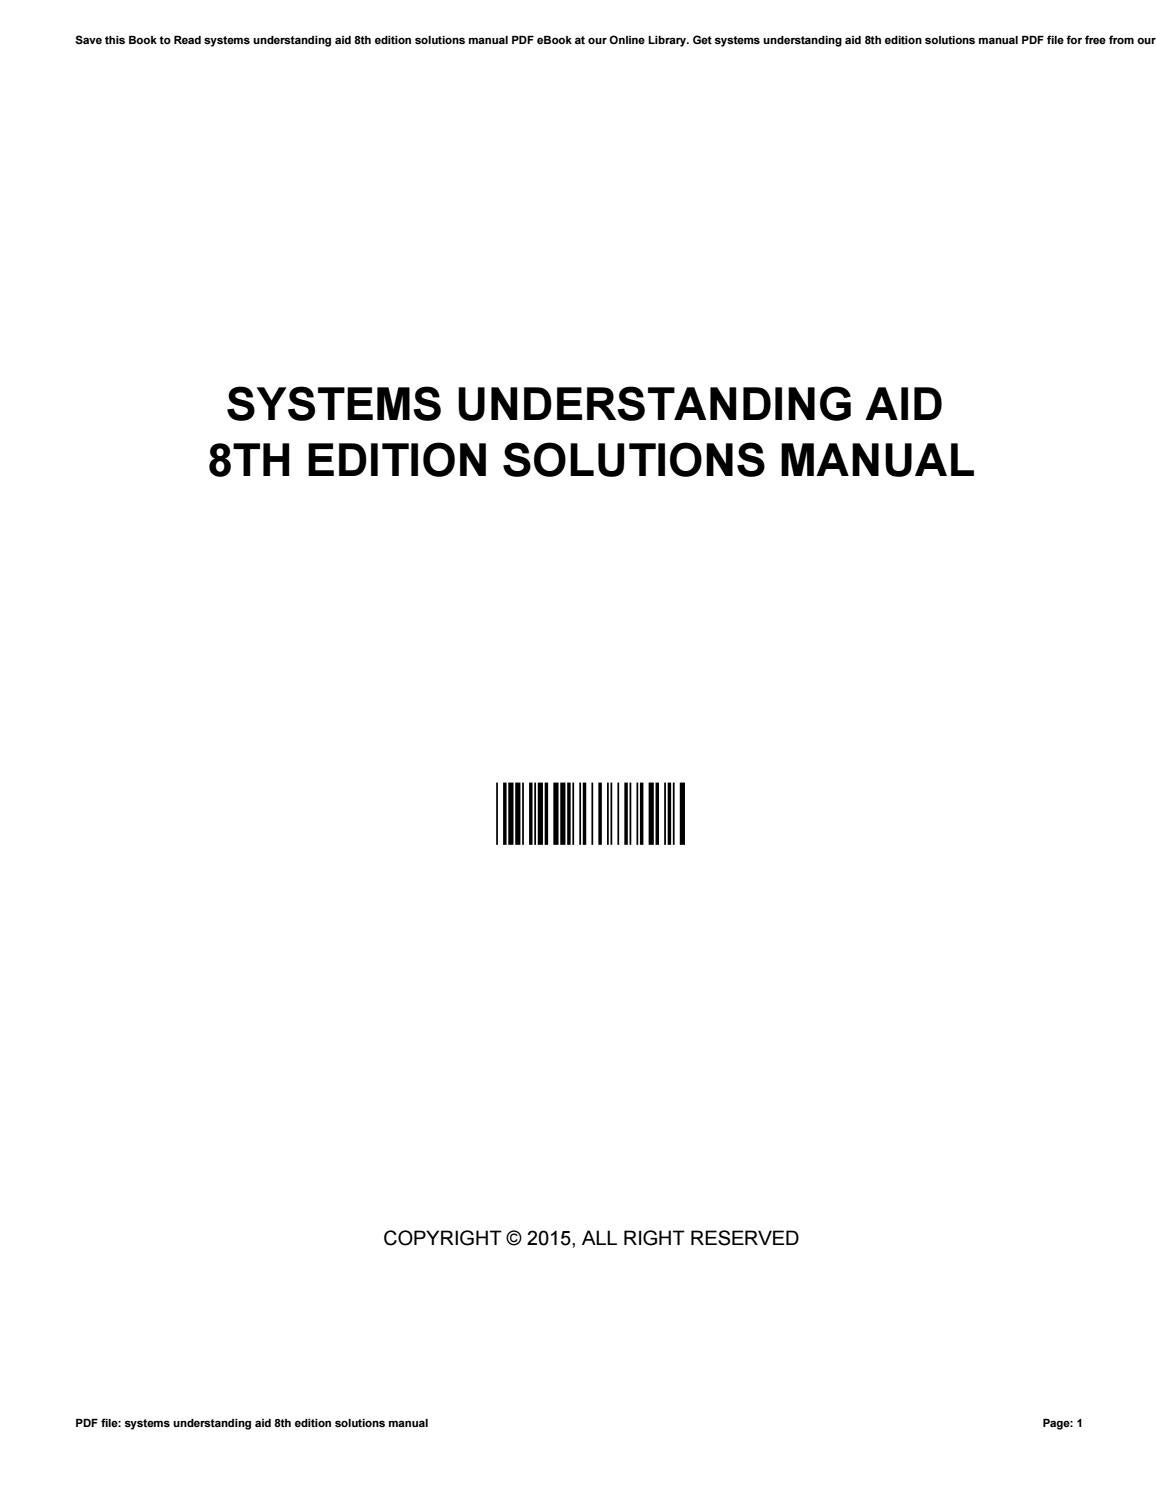 systems understanding aid 8th edition solutions manual by